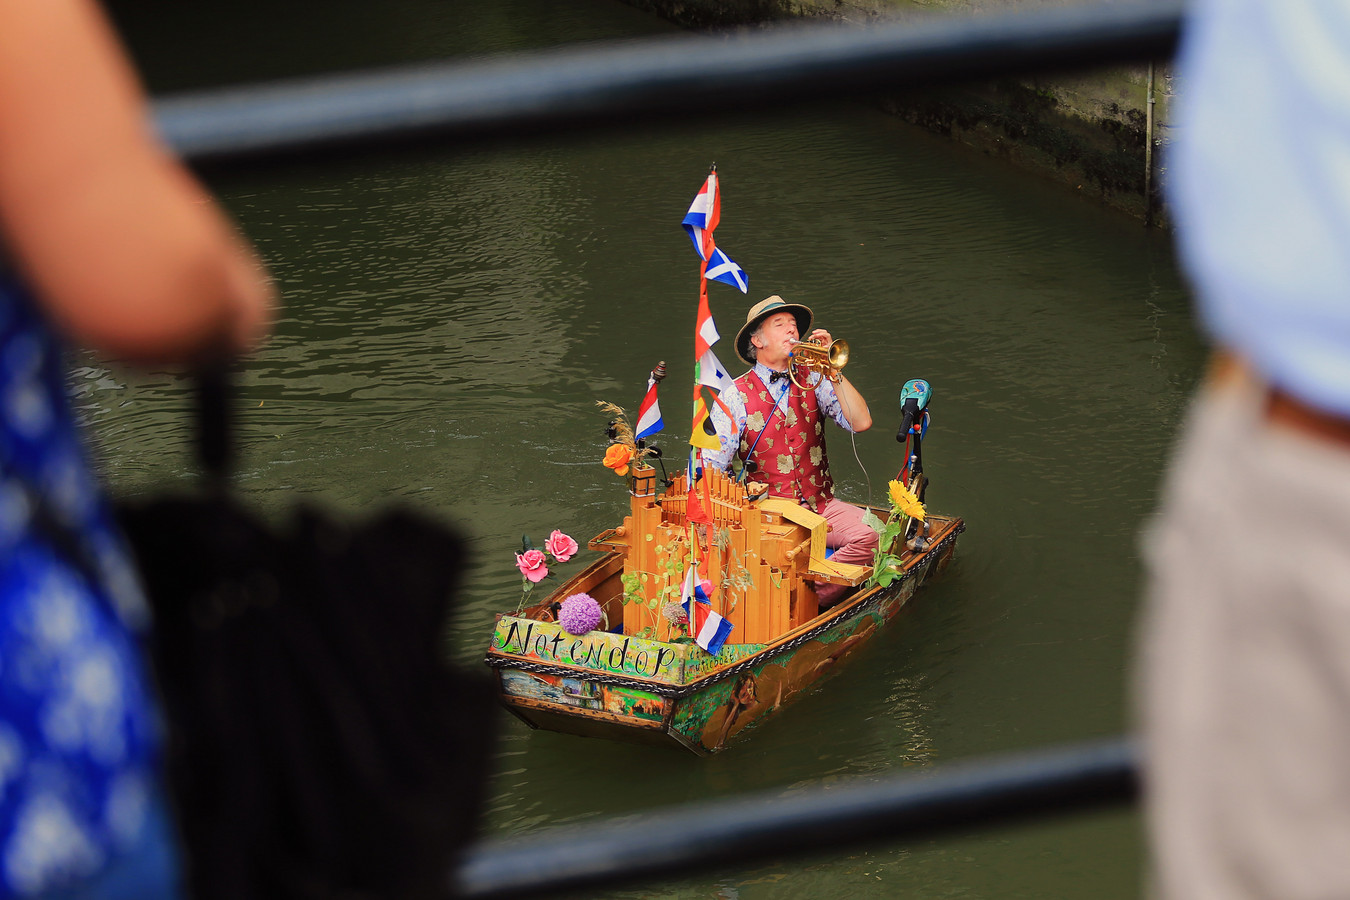 The story behind the famous Music boat